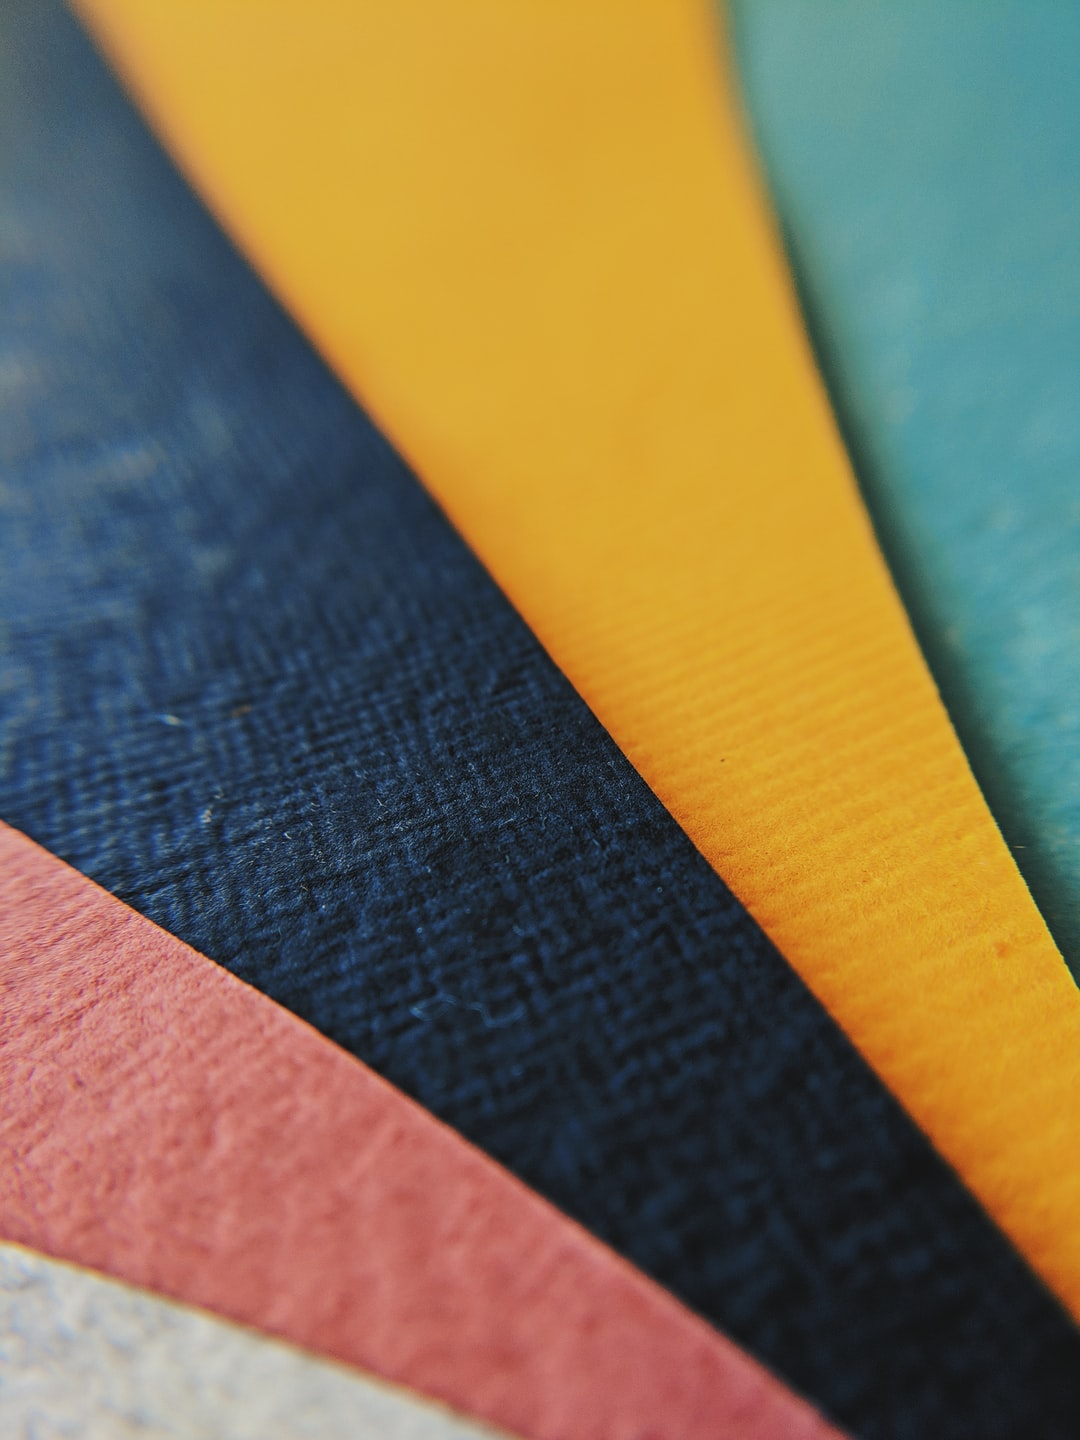 Linen Paper And Its Wide Variety Of Uses